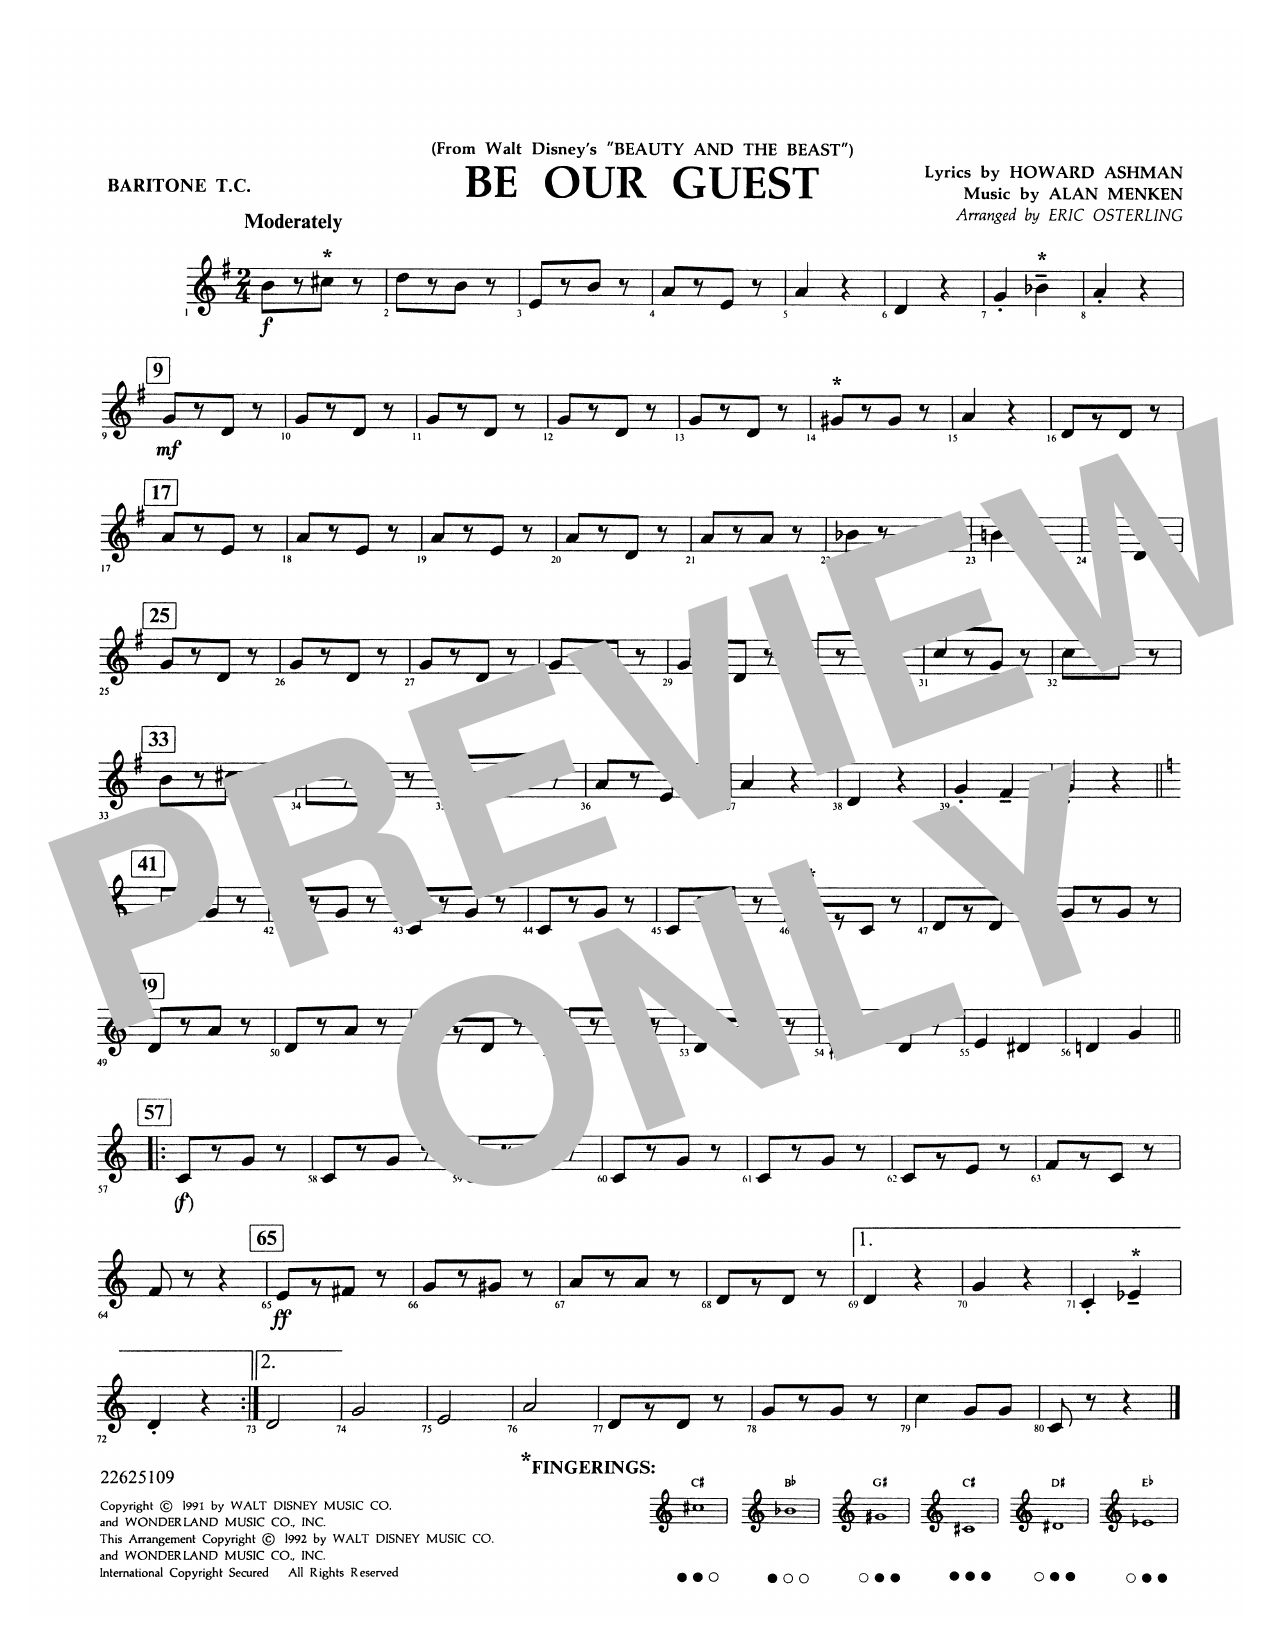 Be Our Guest (from Beauty And The Beast) (arr. Eric Osterling) - Baritone T.C. Sheet Music